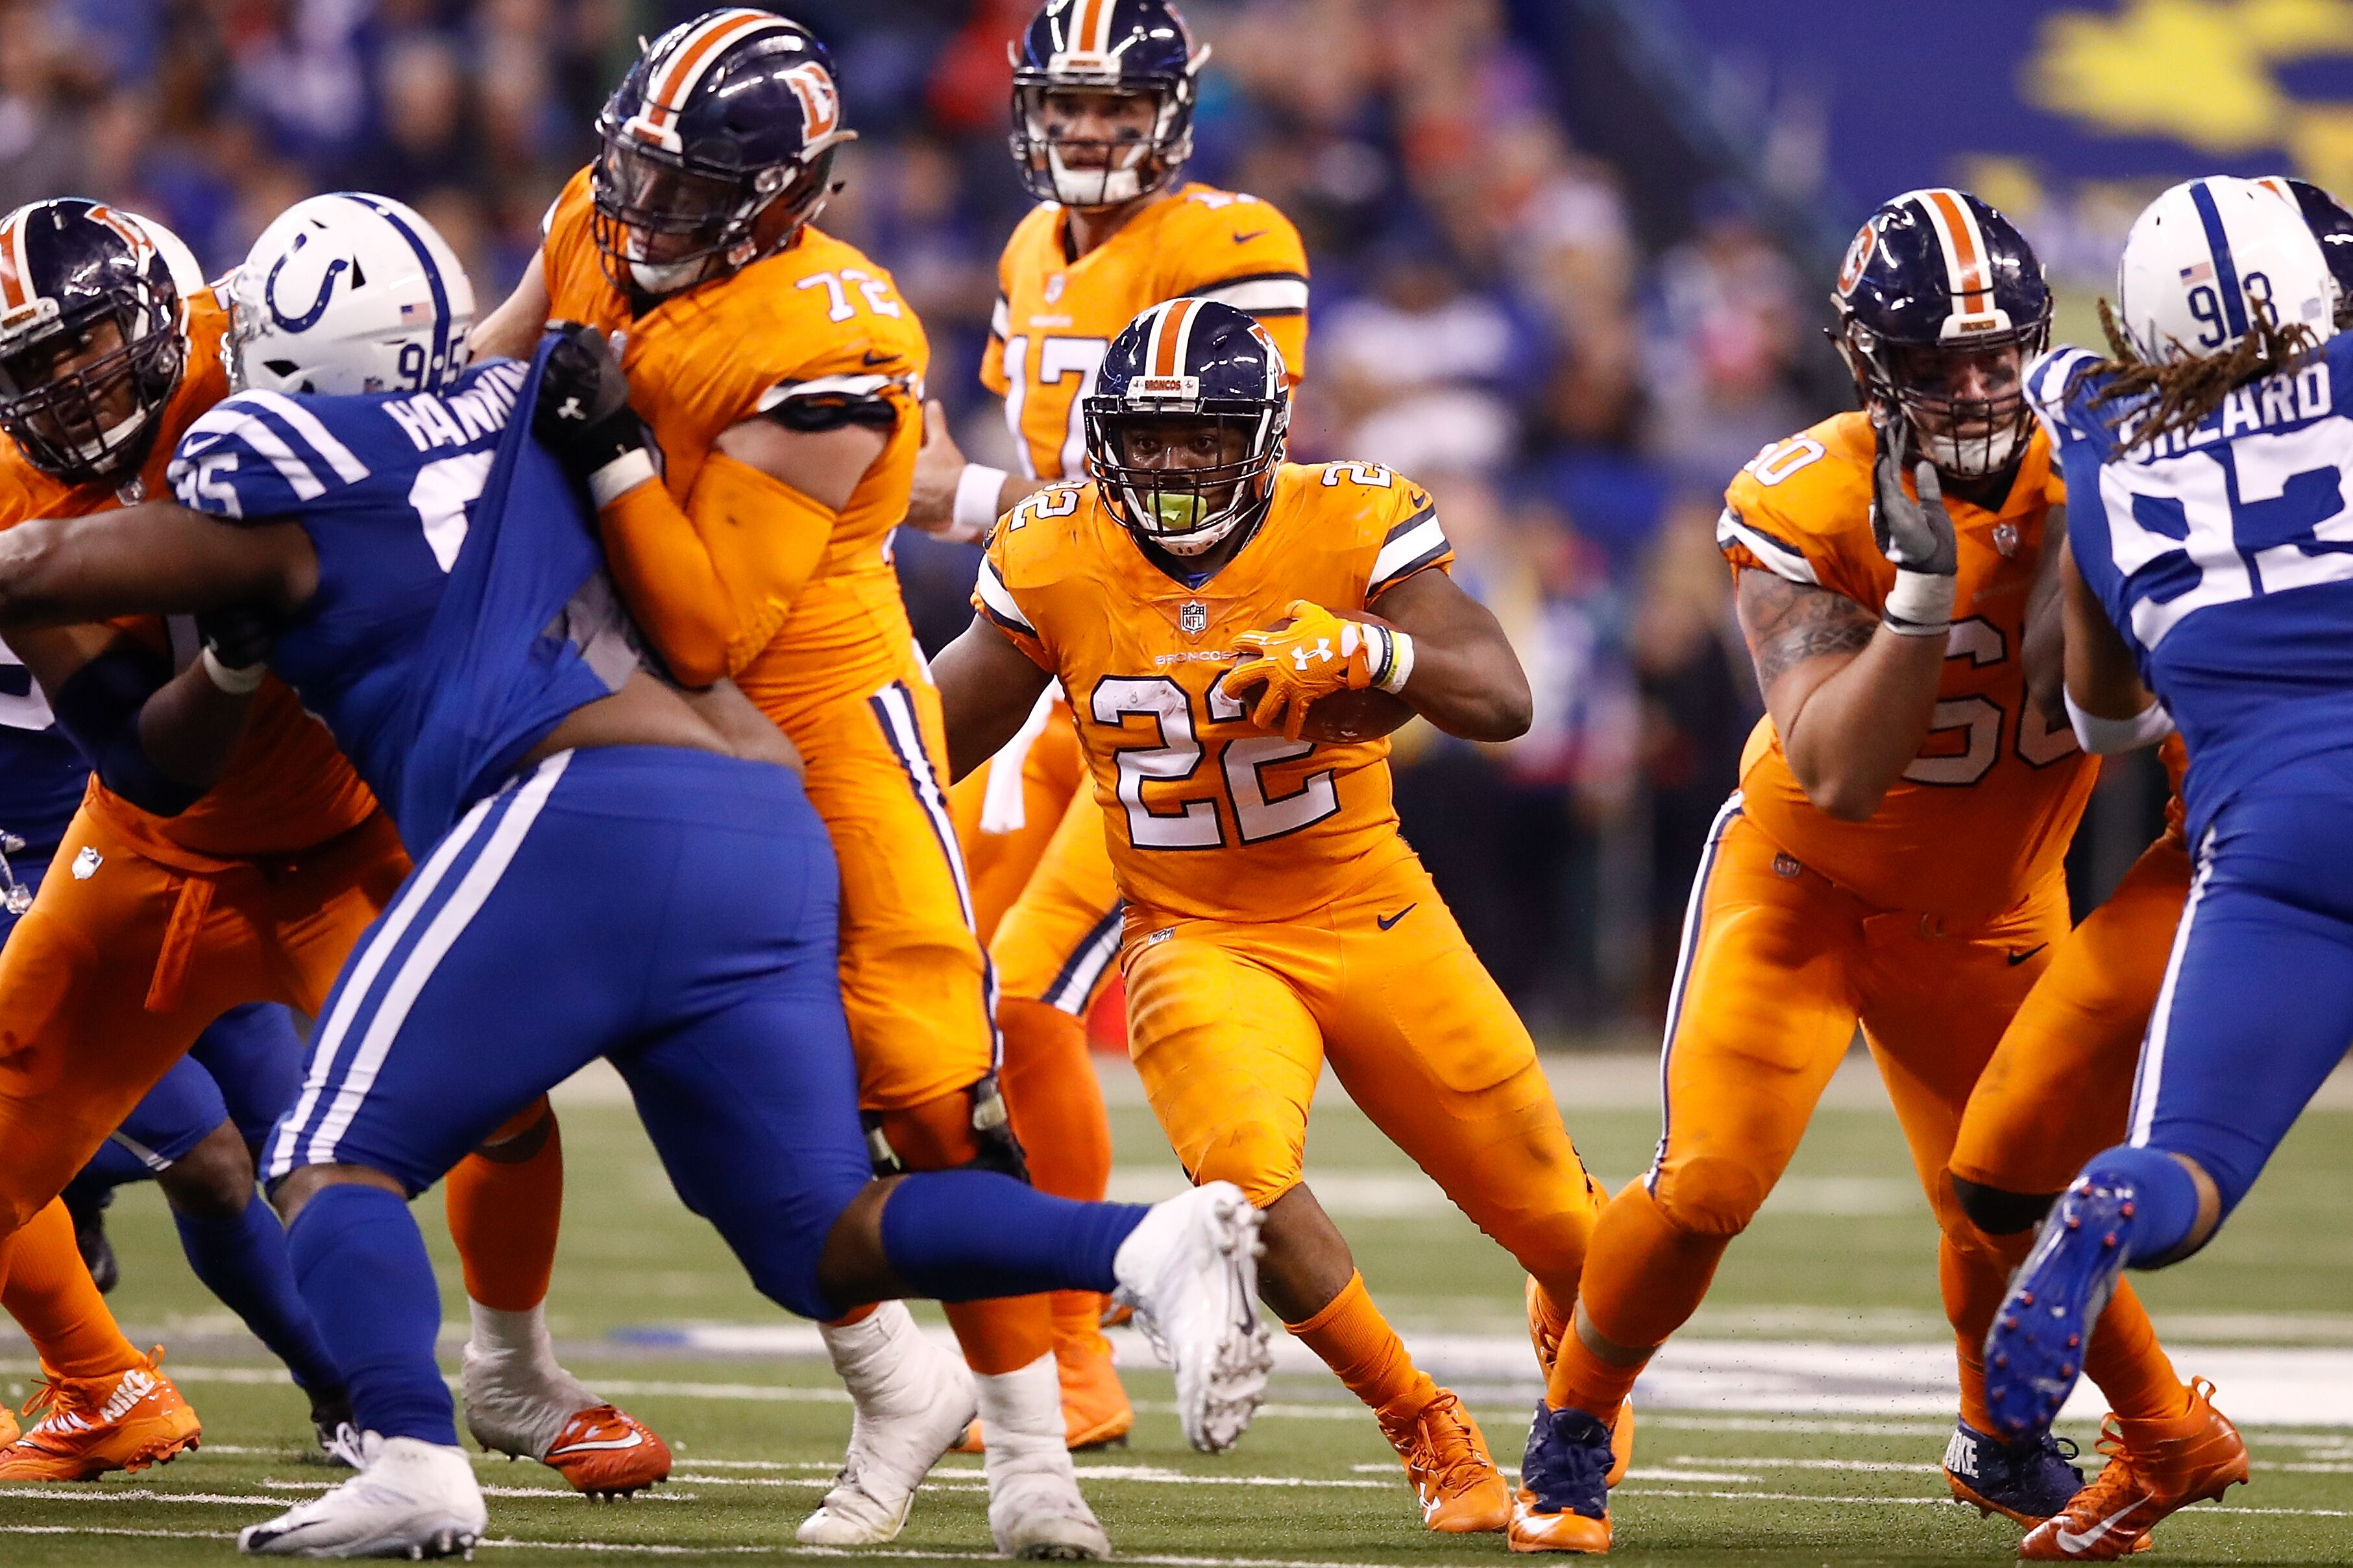 909062e2f61 Dolphins likely to pursue C.J. Anderson if cut by Denver